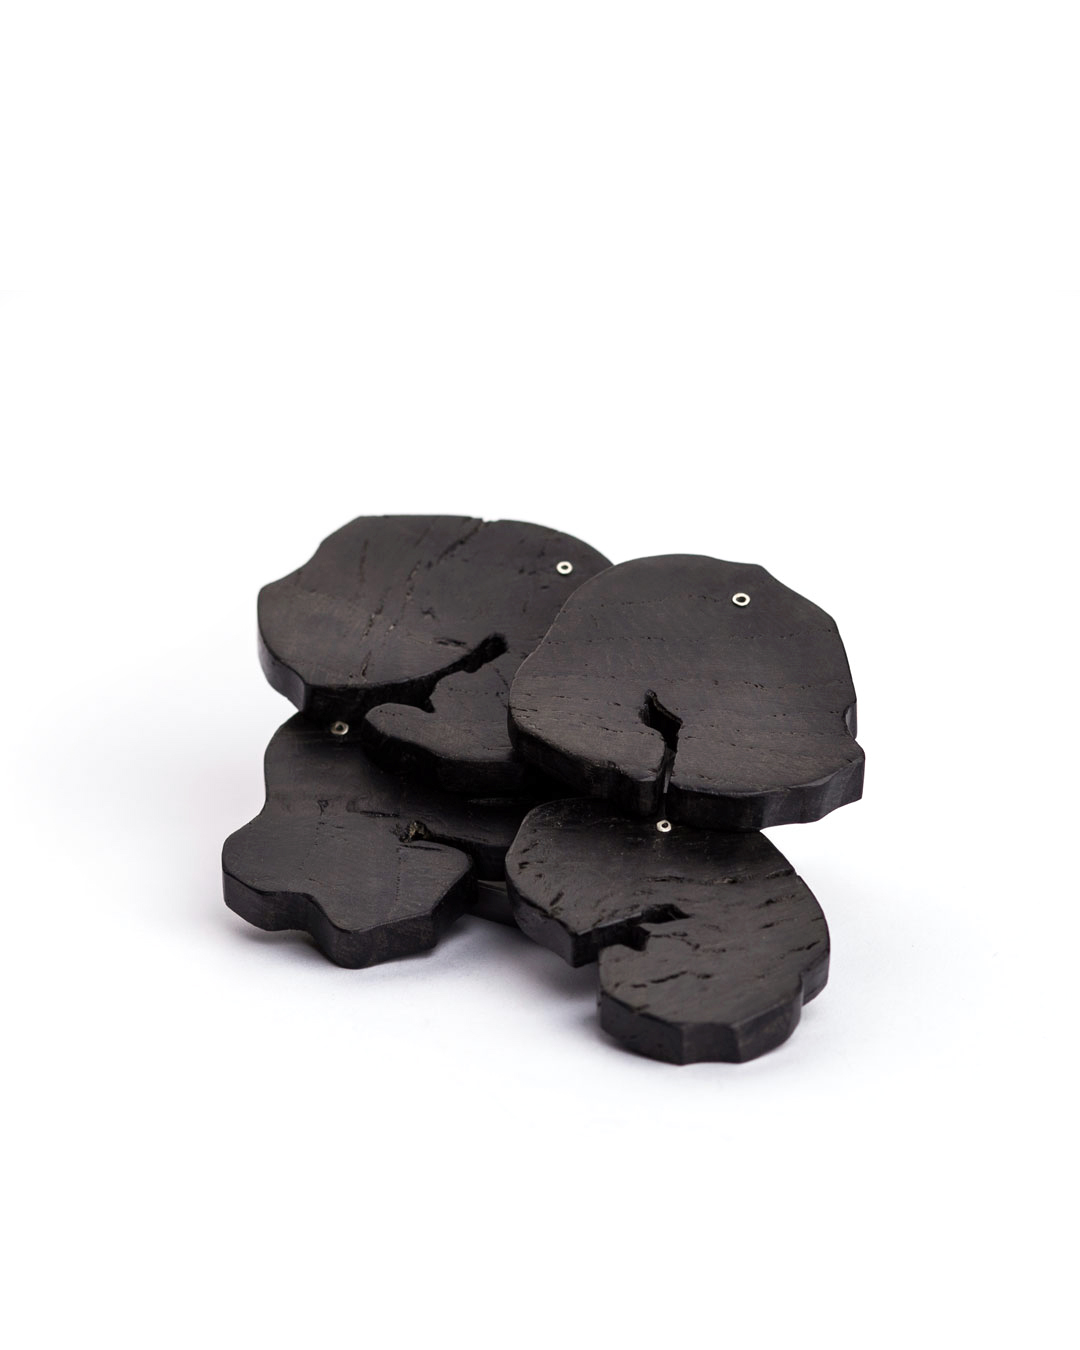 Antje Bräuer, untitled, 2018, brooch; bog oak, silver, steel, 120 x 85 x 15 mm, €1460